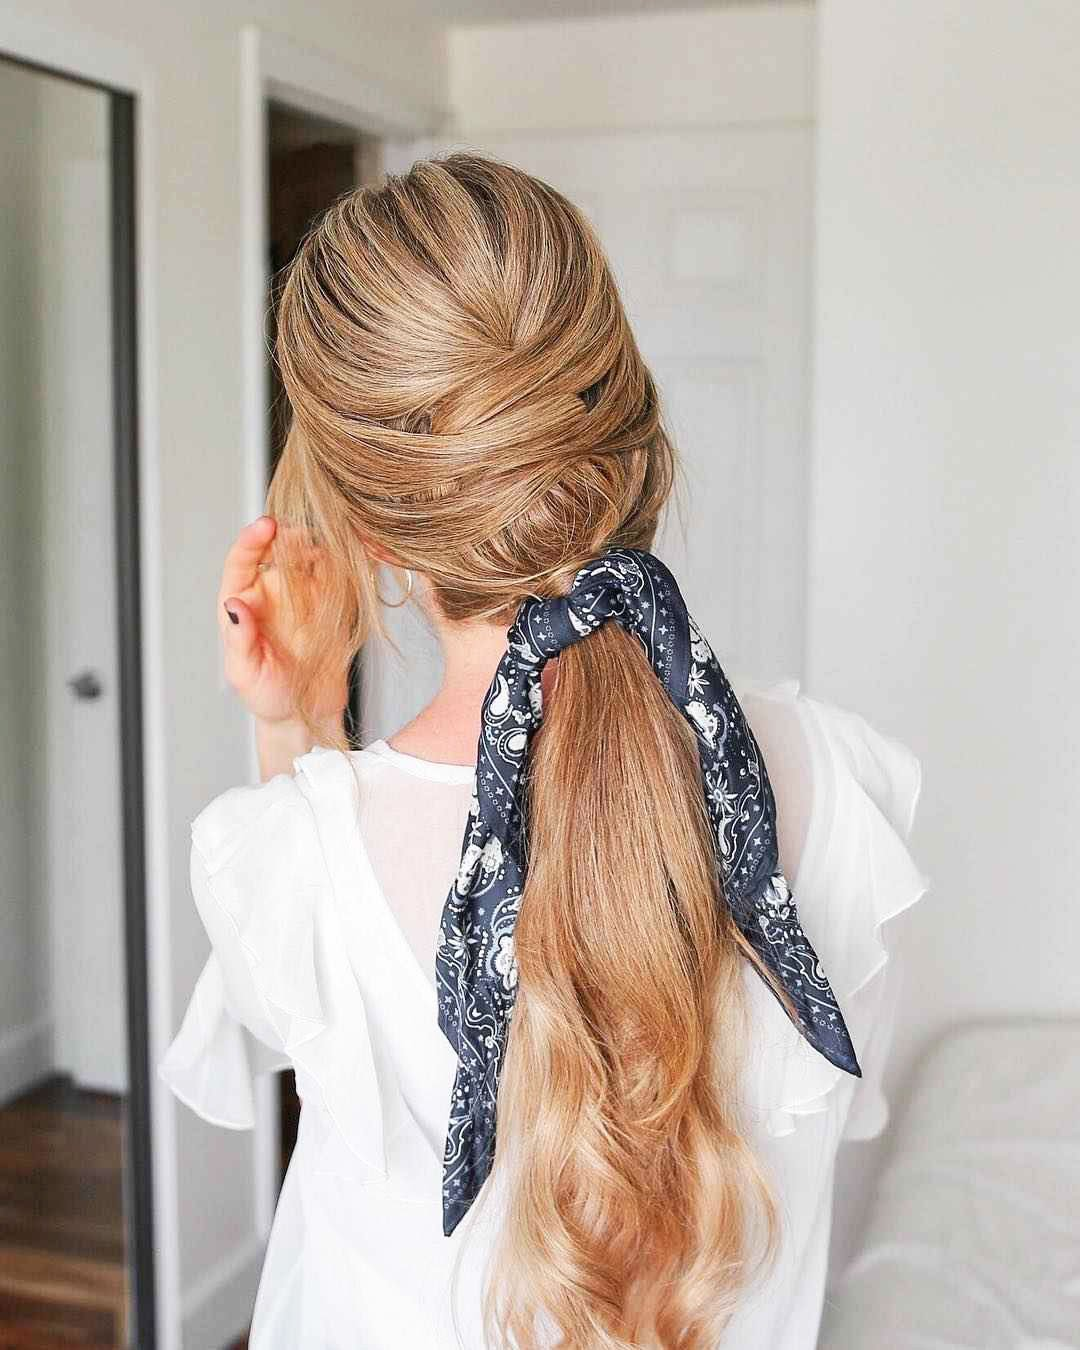 Hairstyles with scarf